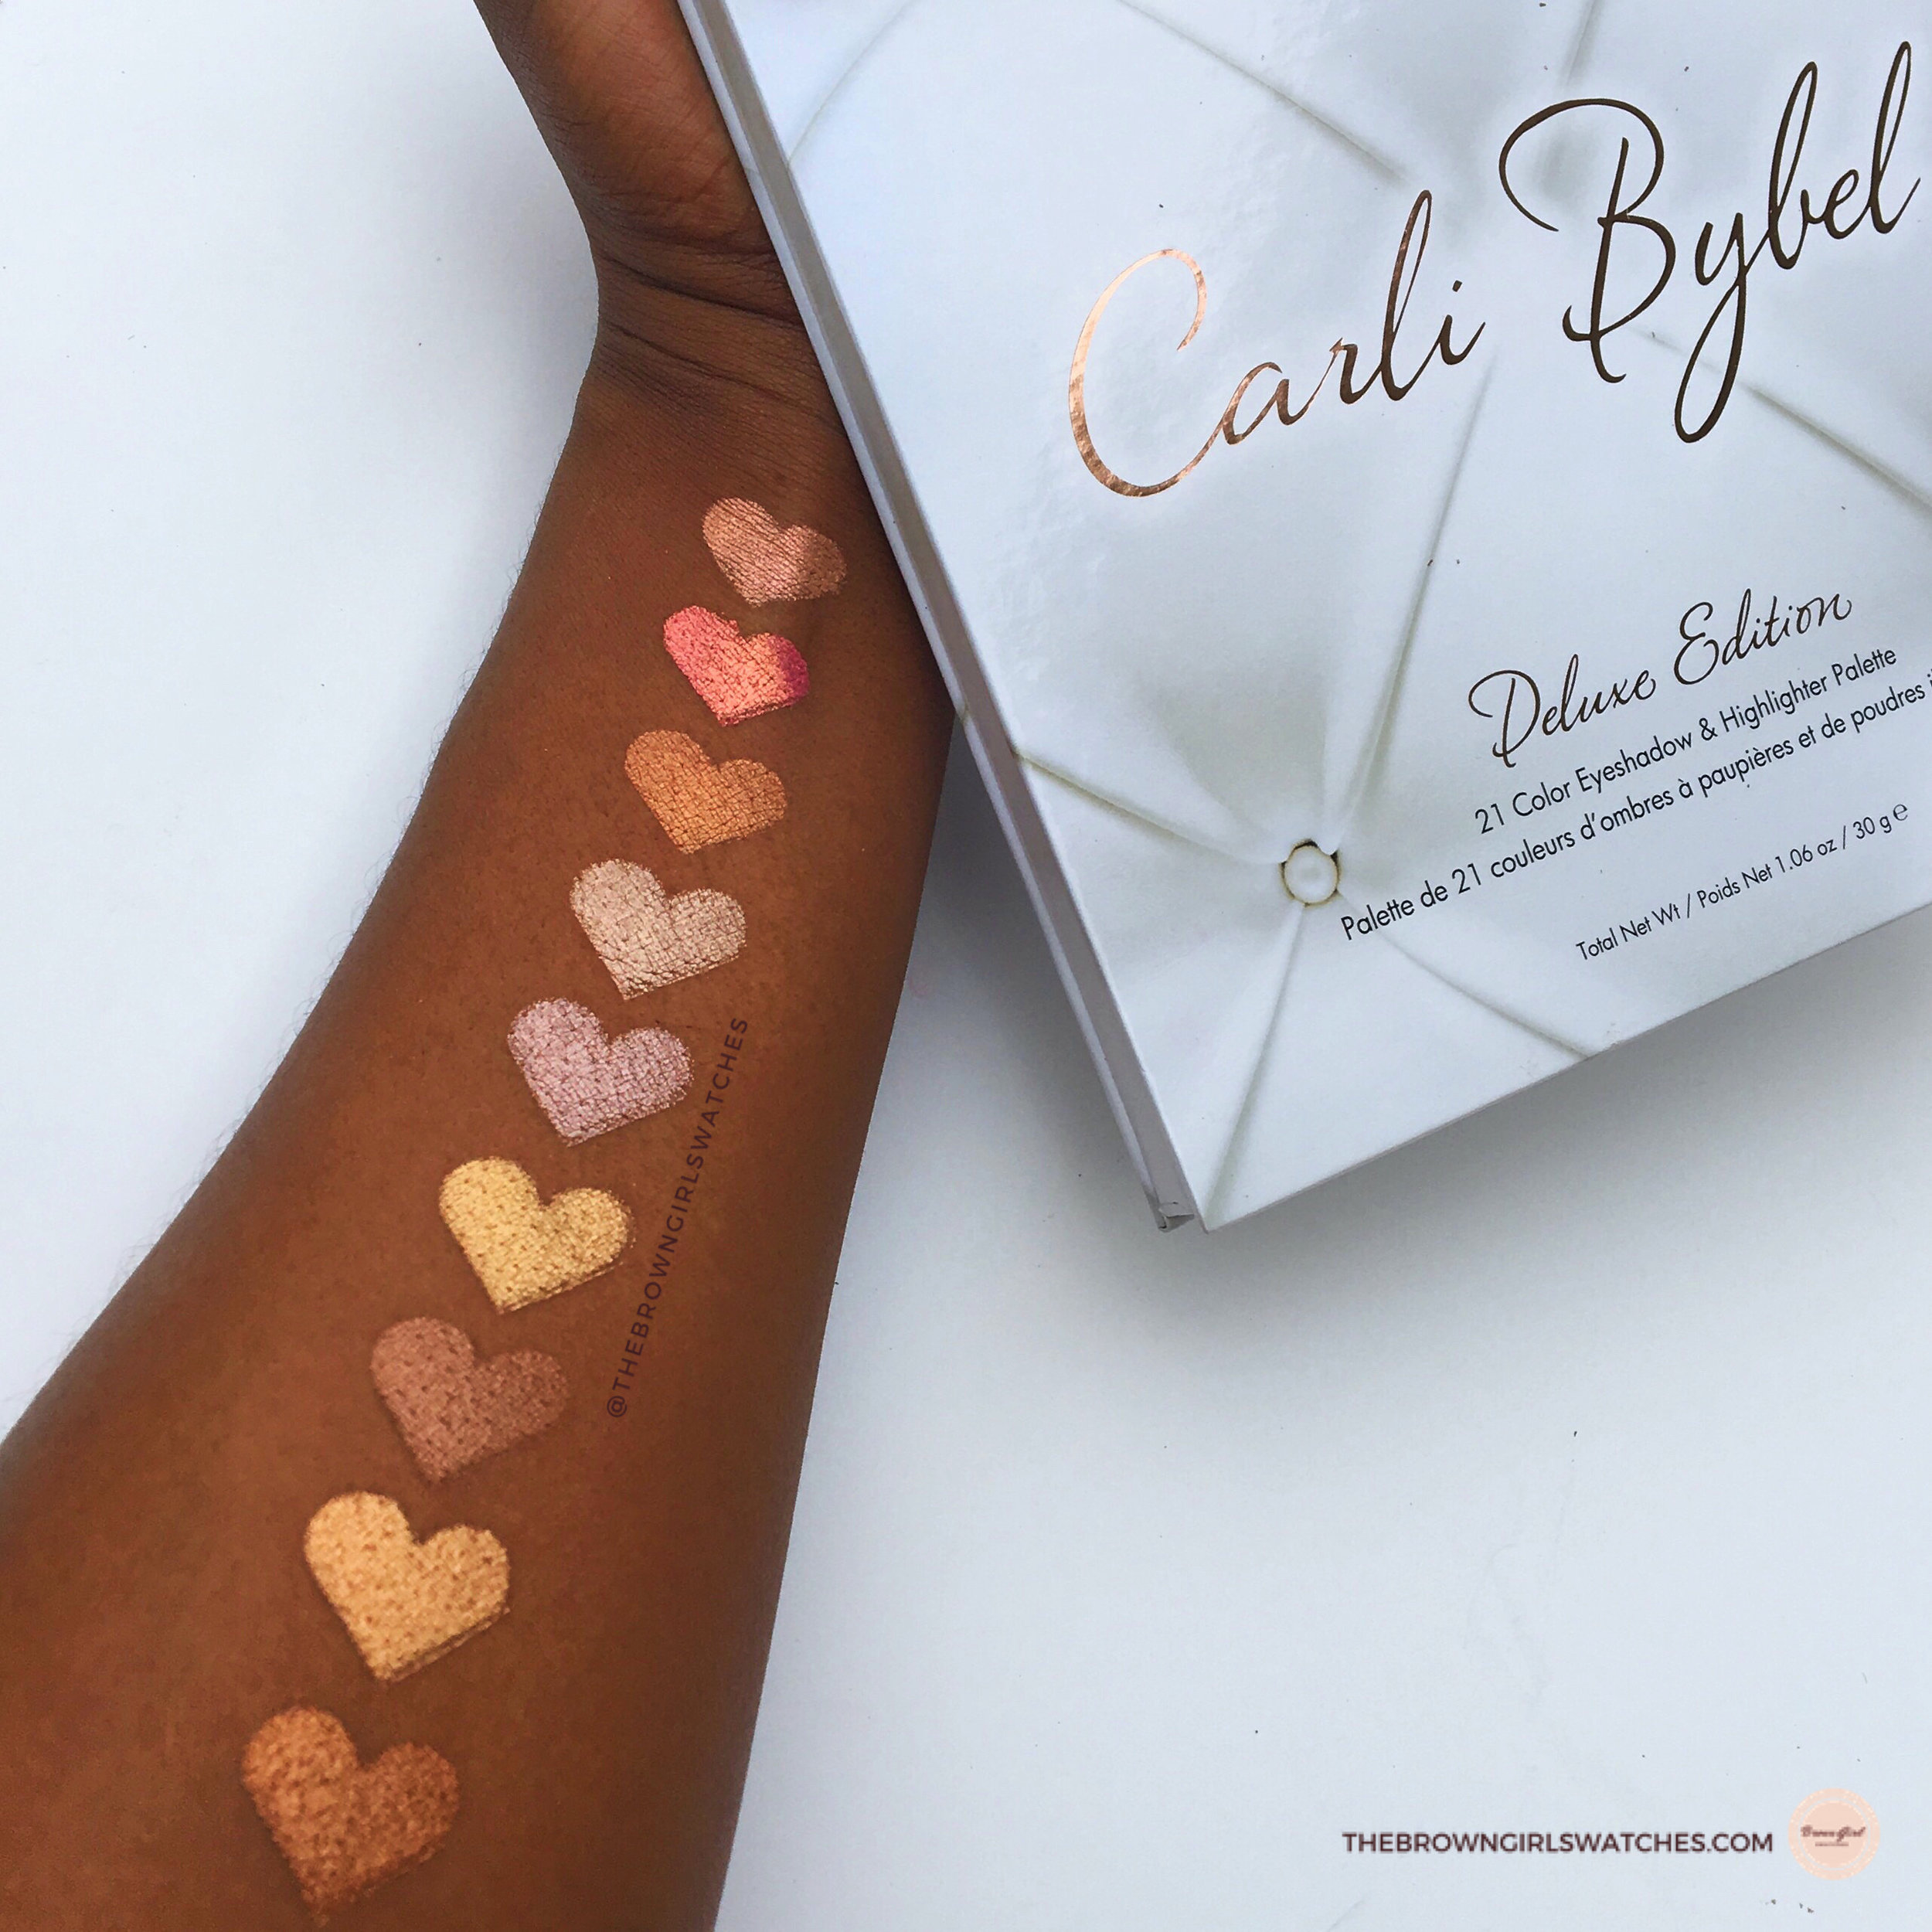 CARLI BYBEL PALETTE DELUXE EDITION SWATCHES ON BROWN SKIN